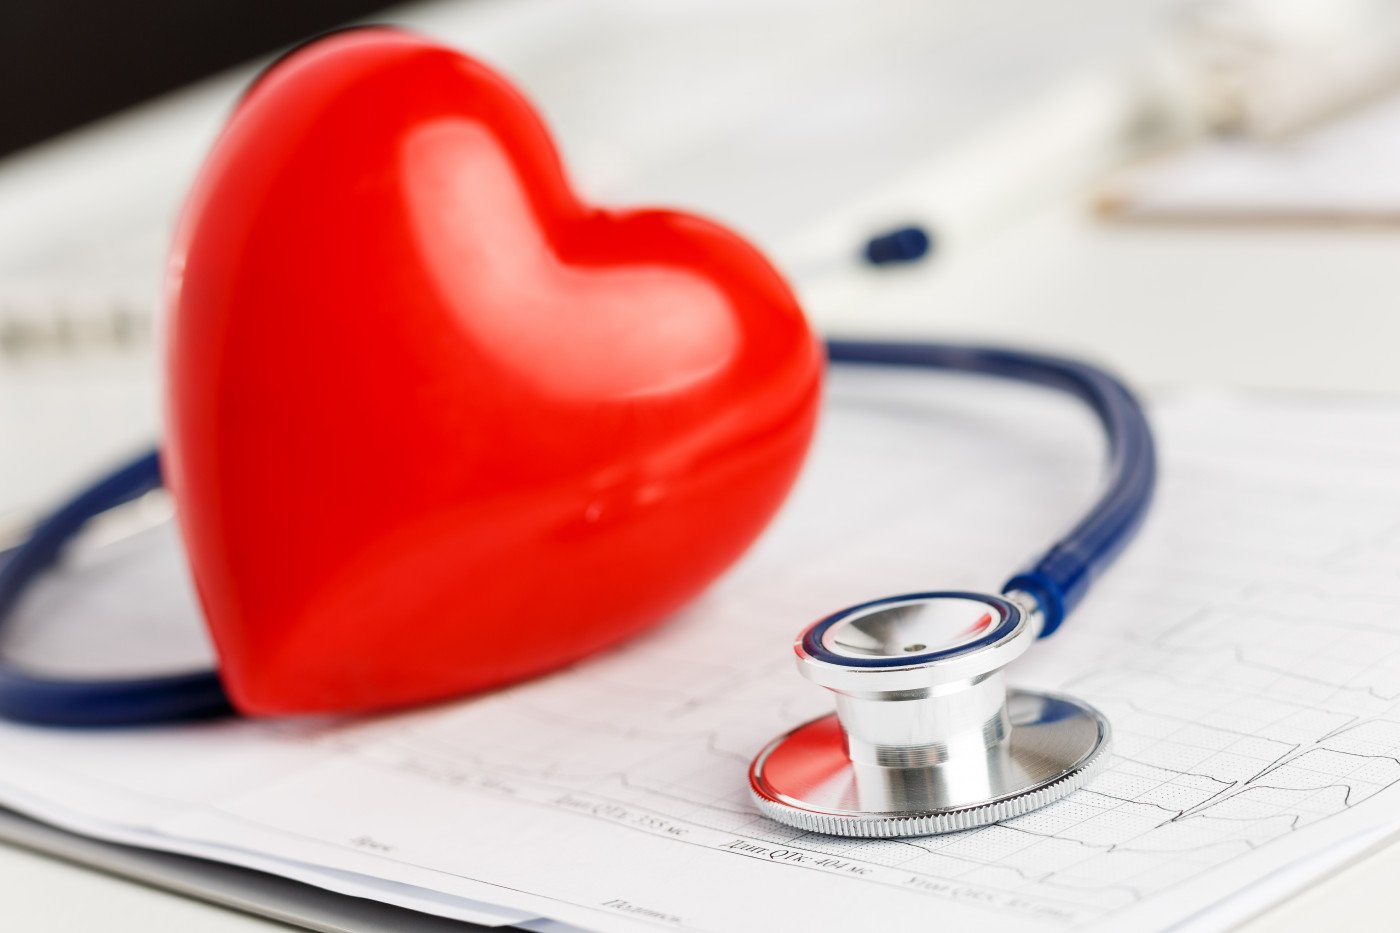 heart problems and sarcoidosis